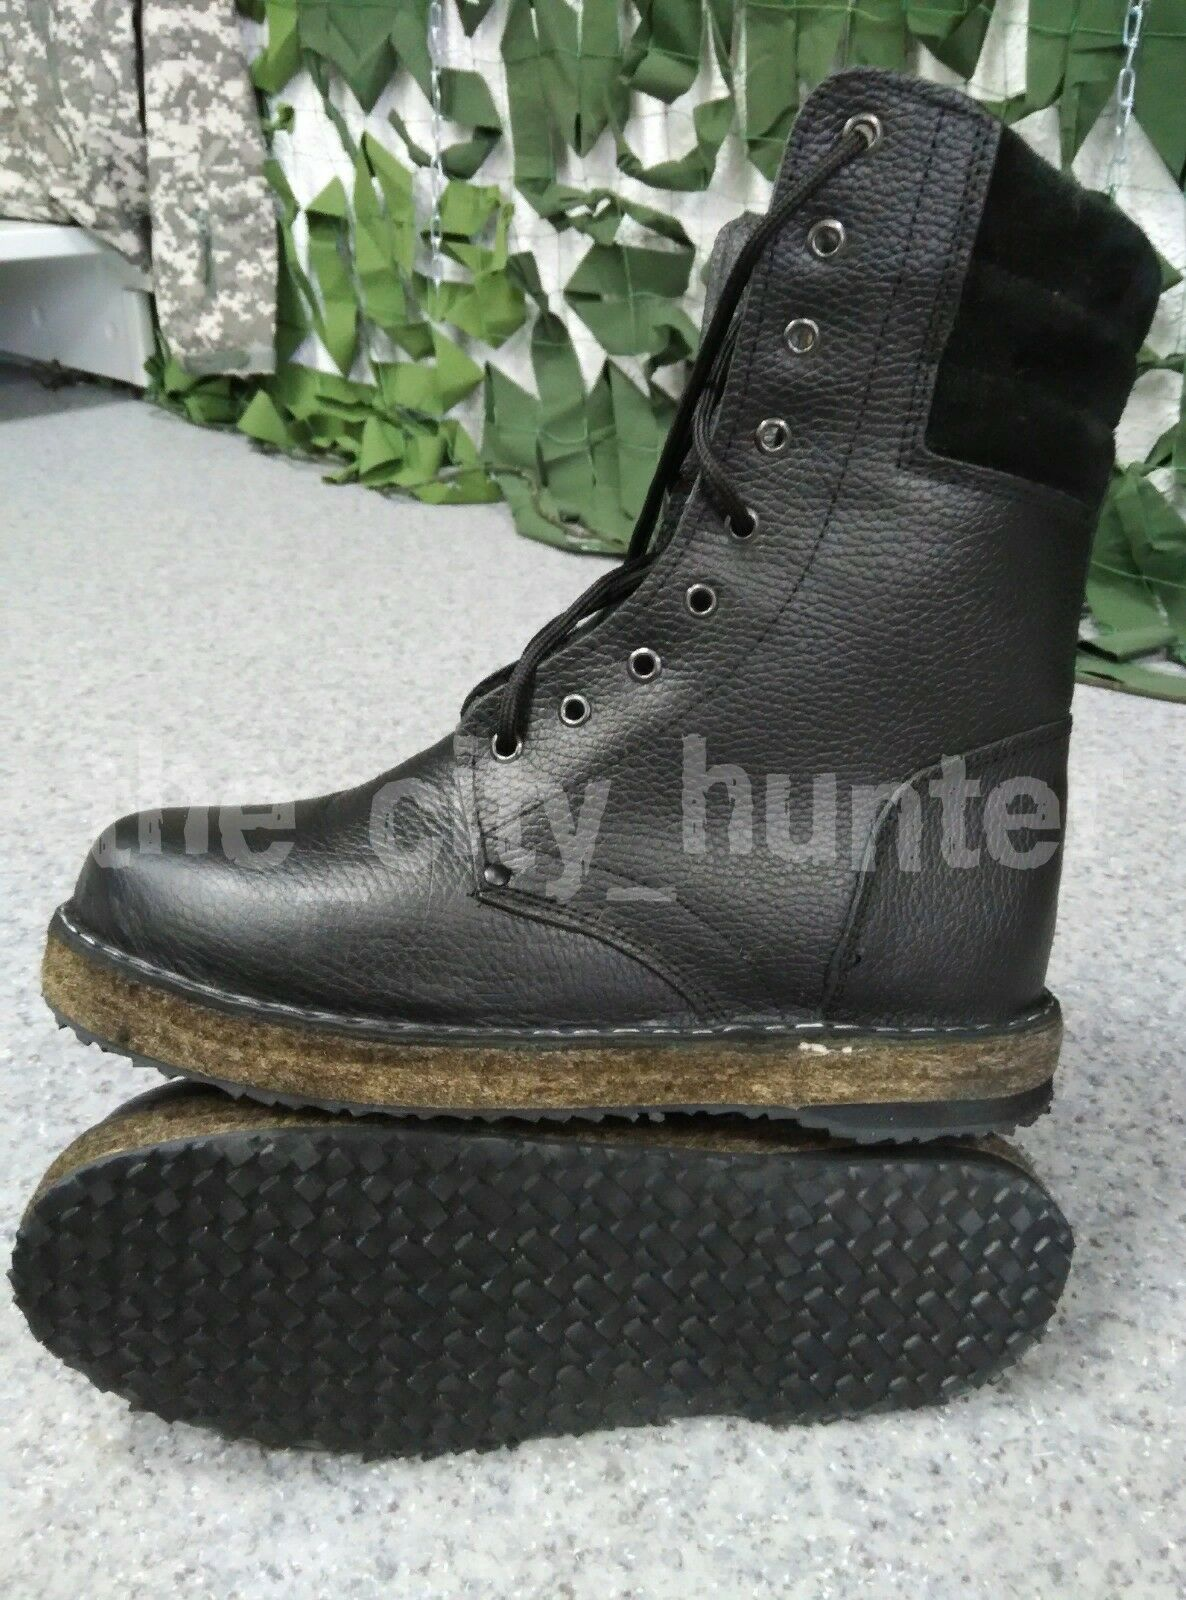 Winter leather boots. Heater fur sheepskin. Special non-freezing sole. New.